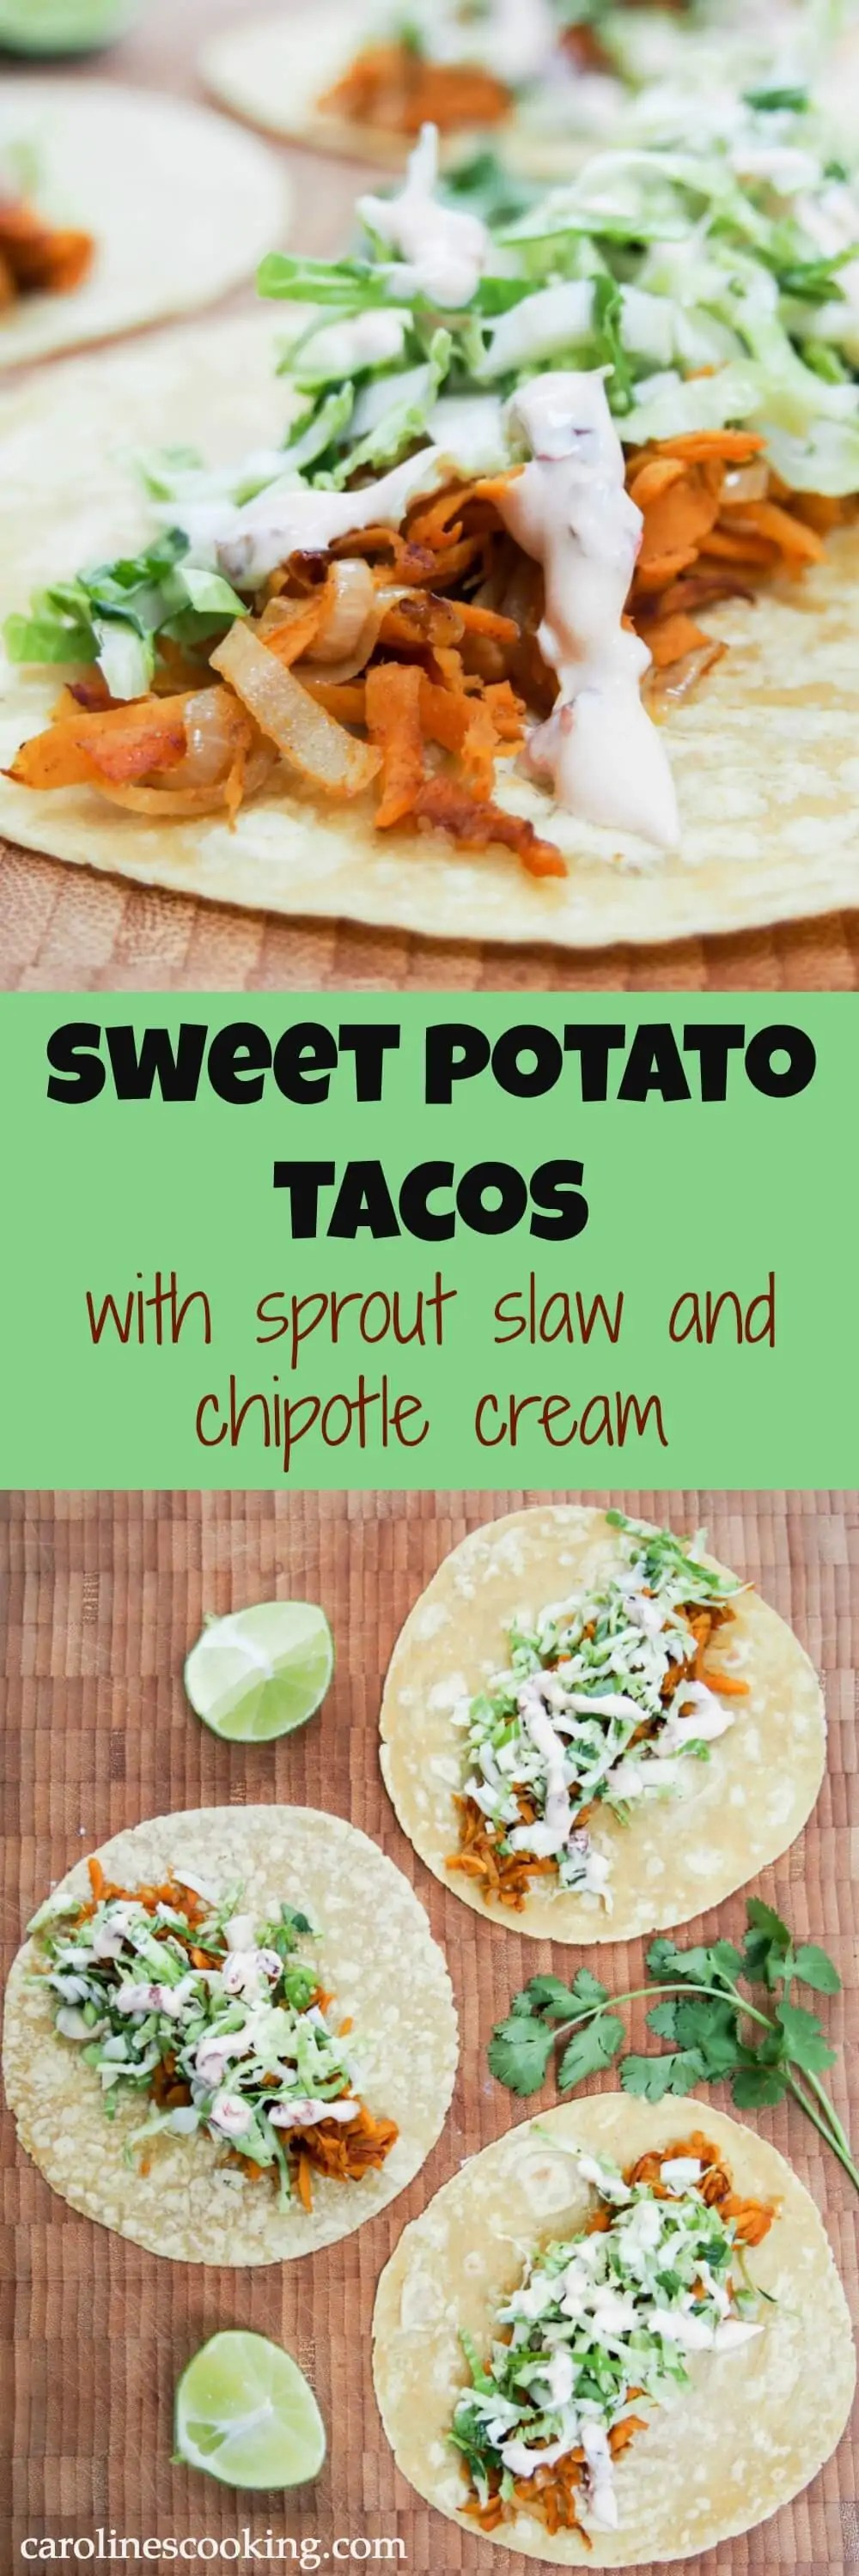 These sweet potato tacos are easy to make & thoroughly delicious. Gently spiced sweet potato, a crunchy, zesty slaw & a kick from chipotle cream. Vegetarian